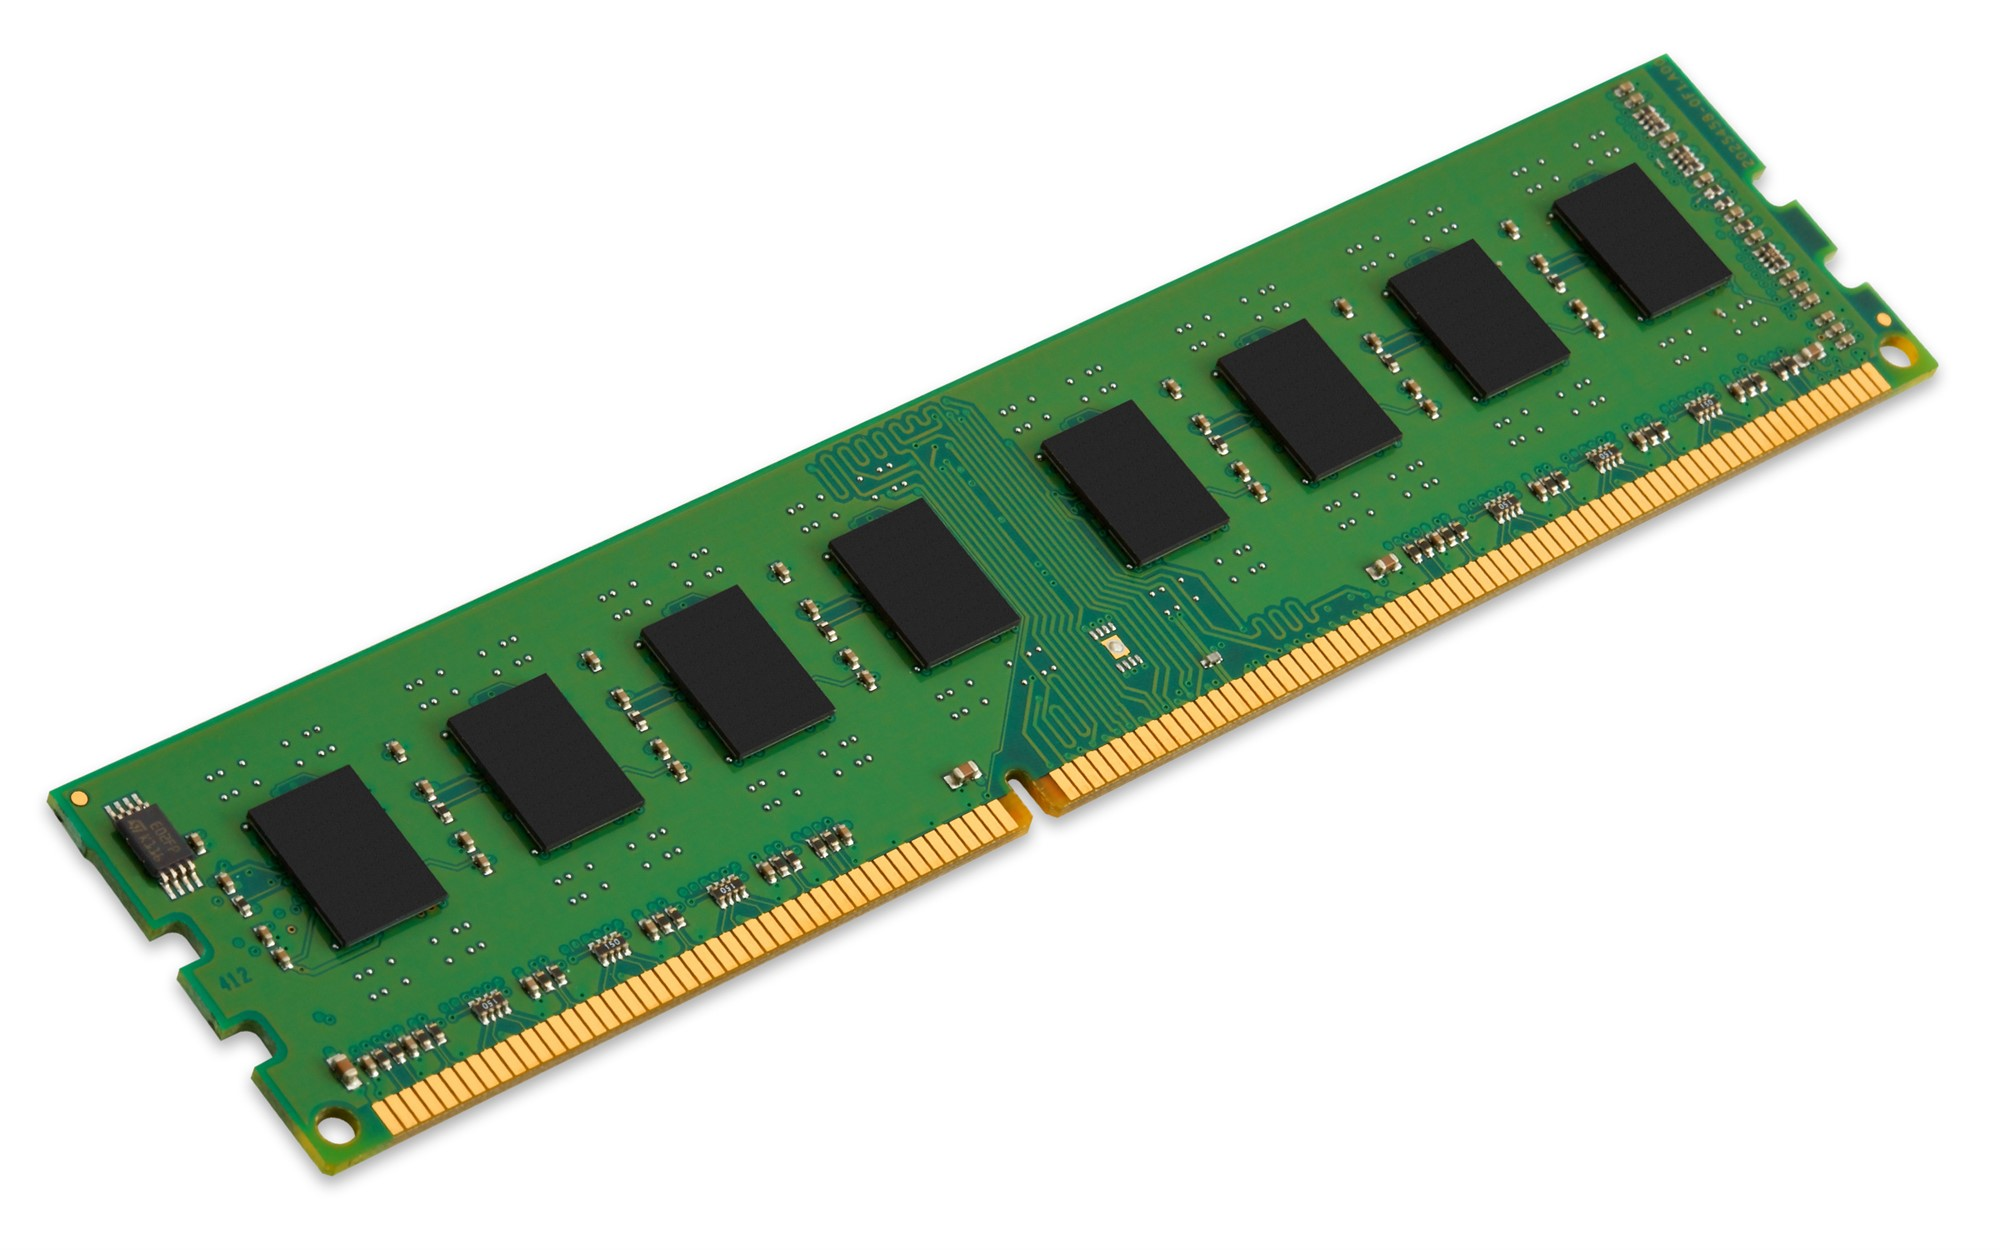 KINGSTON VALUERAM 16GB(2 X 8GB) DDR3-1600 16GB DDR3 1600MHZ MEMORY MODULE